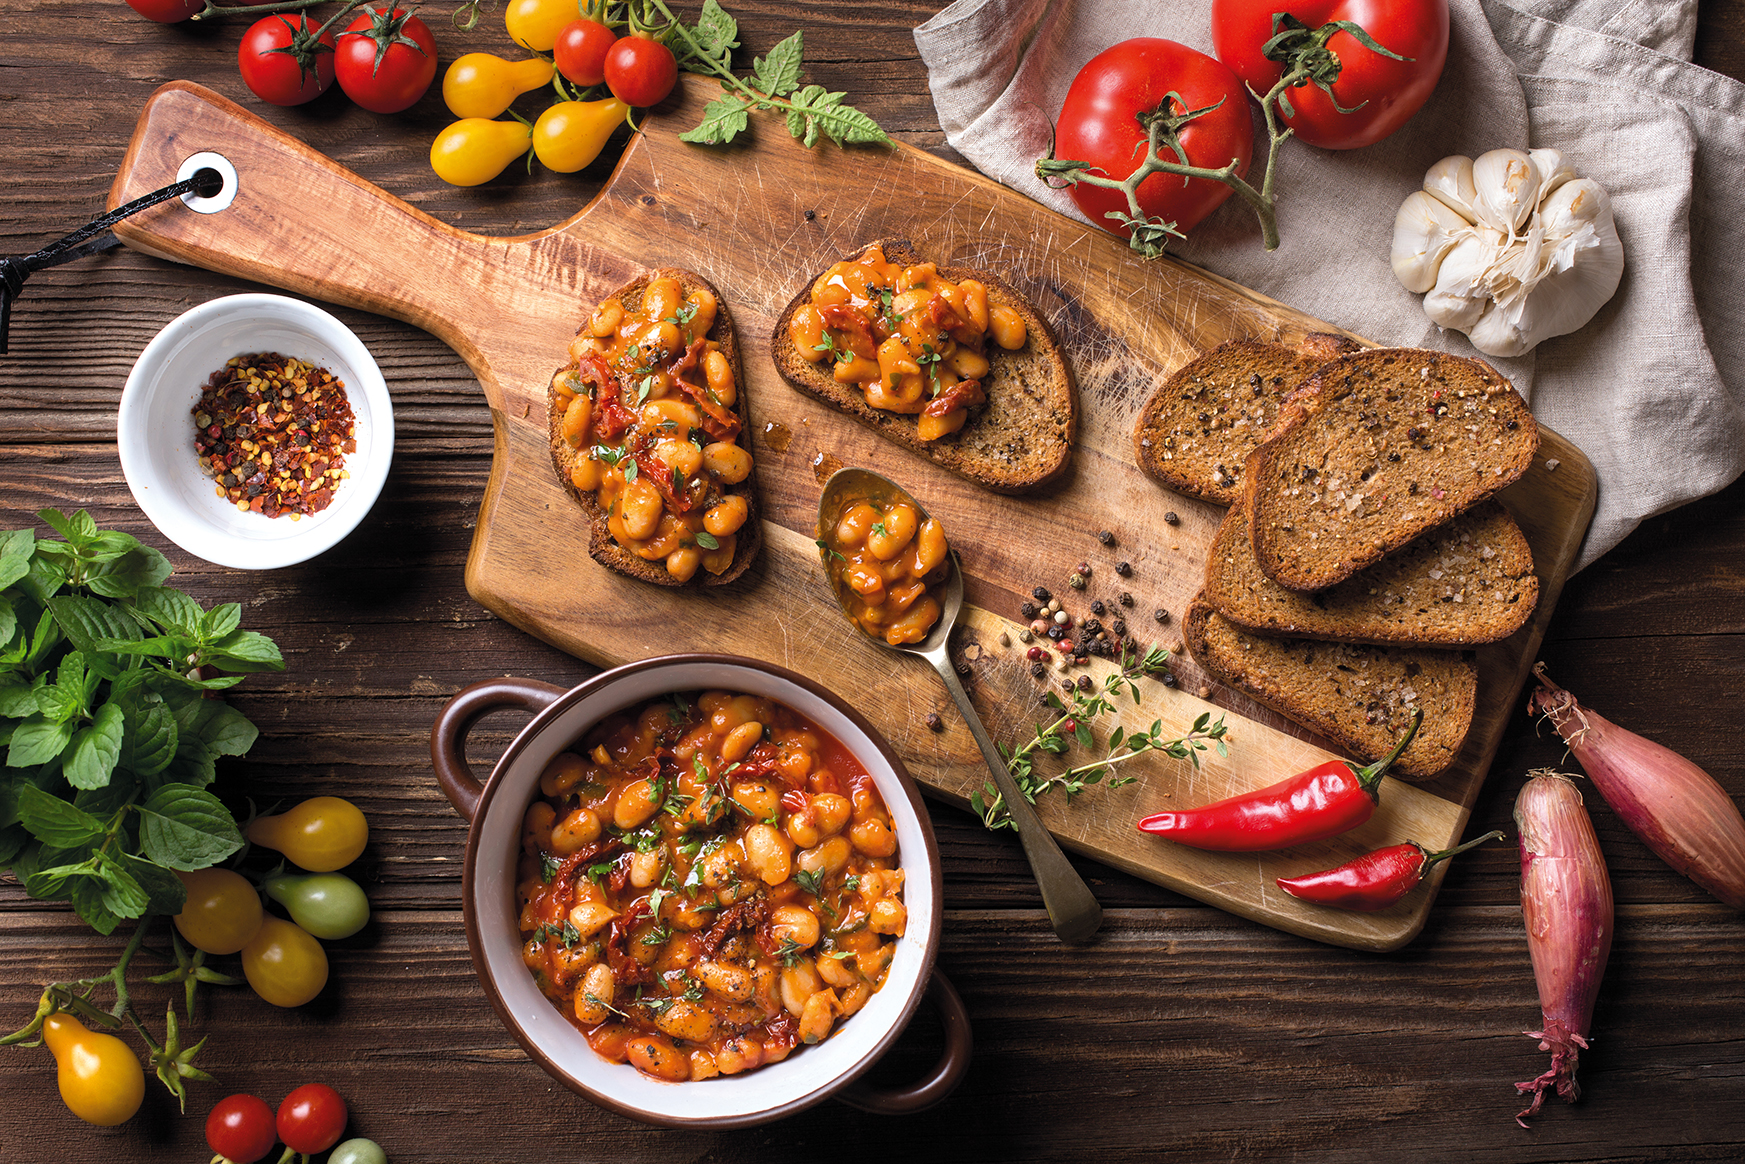 Whole-grain crostini with beans and dried tomatoes